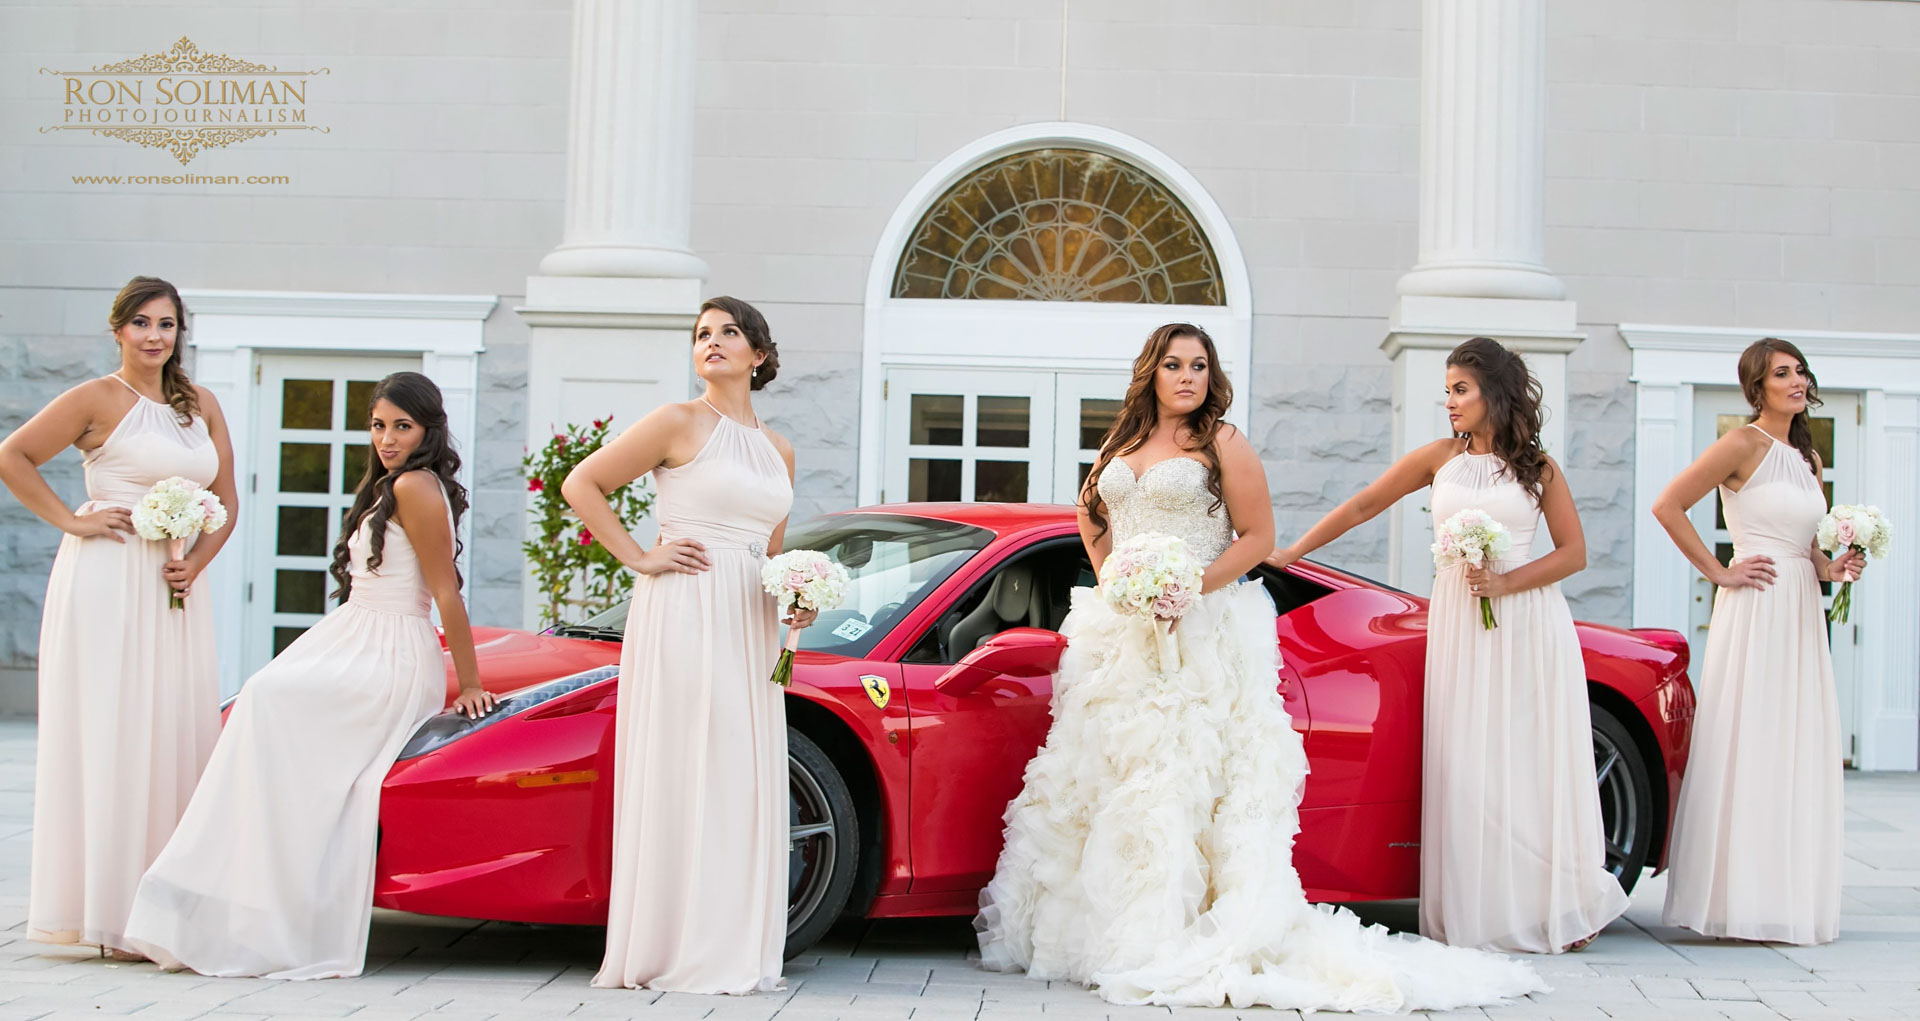 Ferrari 458 Wedding photos